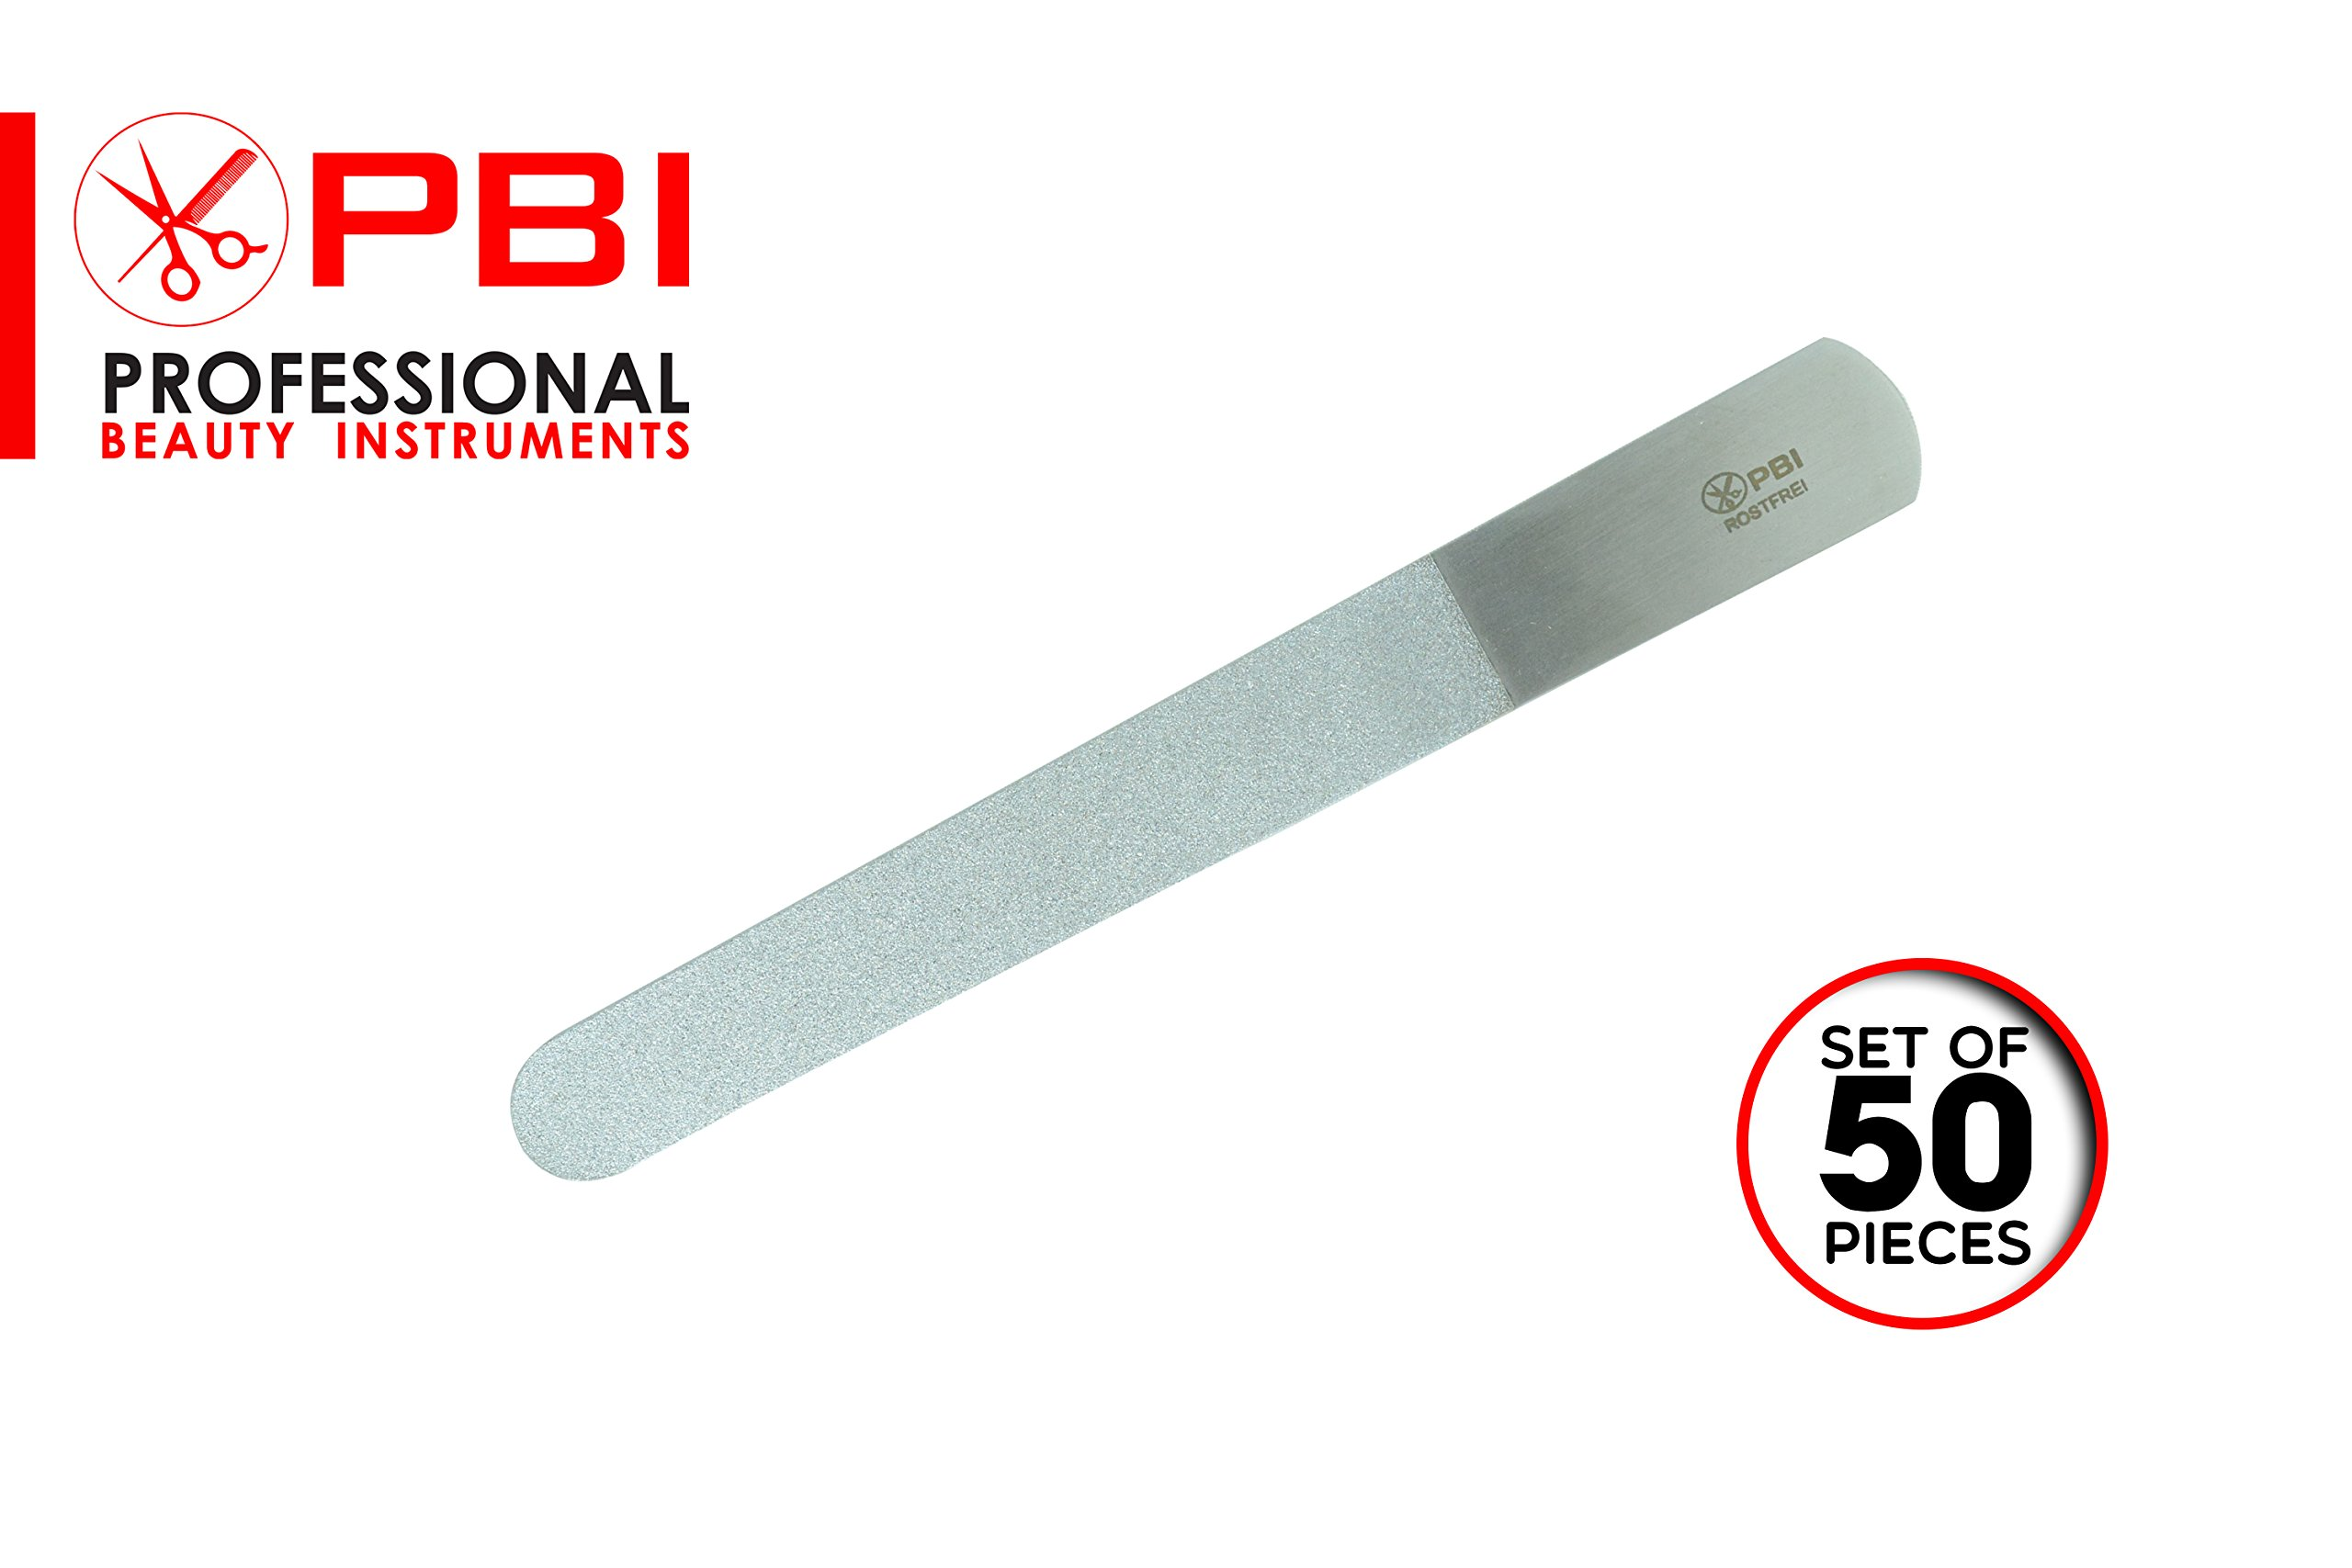 Nail file - Double sided nail file - Manicure Pedicure nail file - Stainless steel nail file - 6 inch - 50 pieces set - from PBI